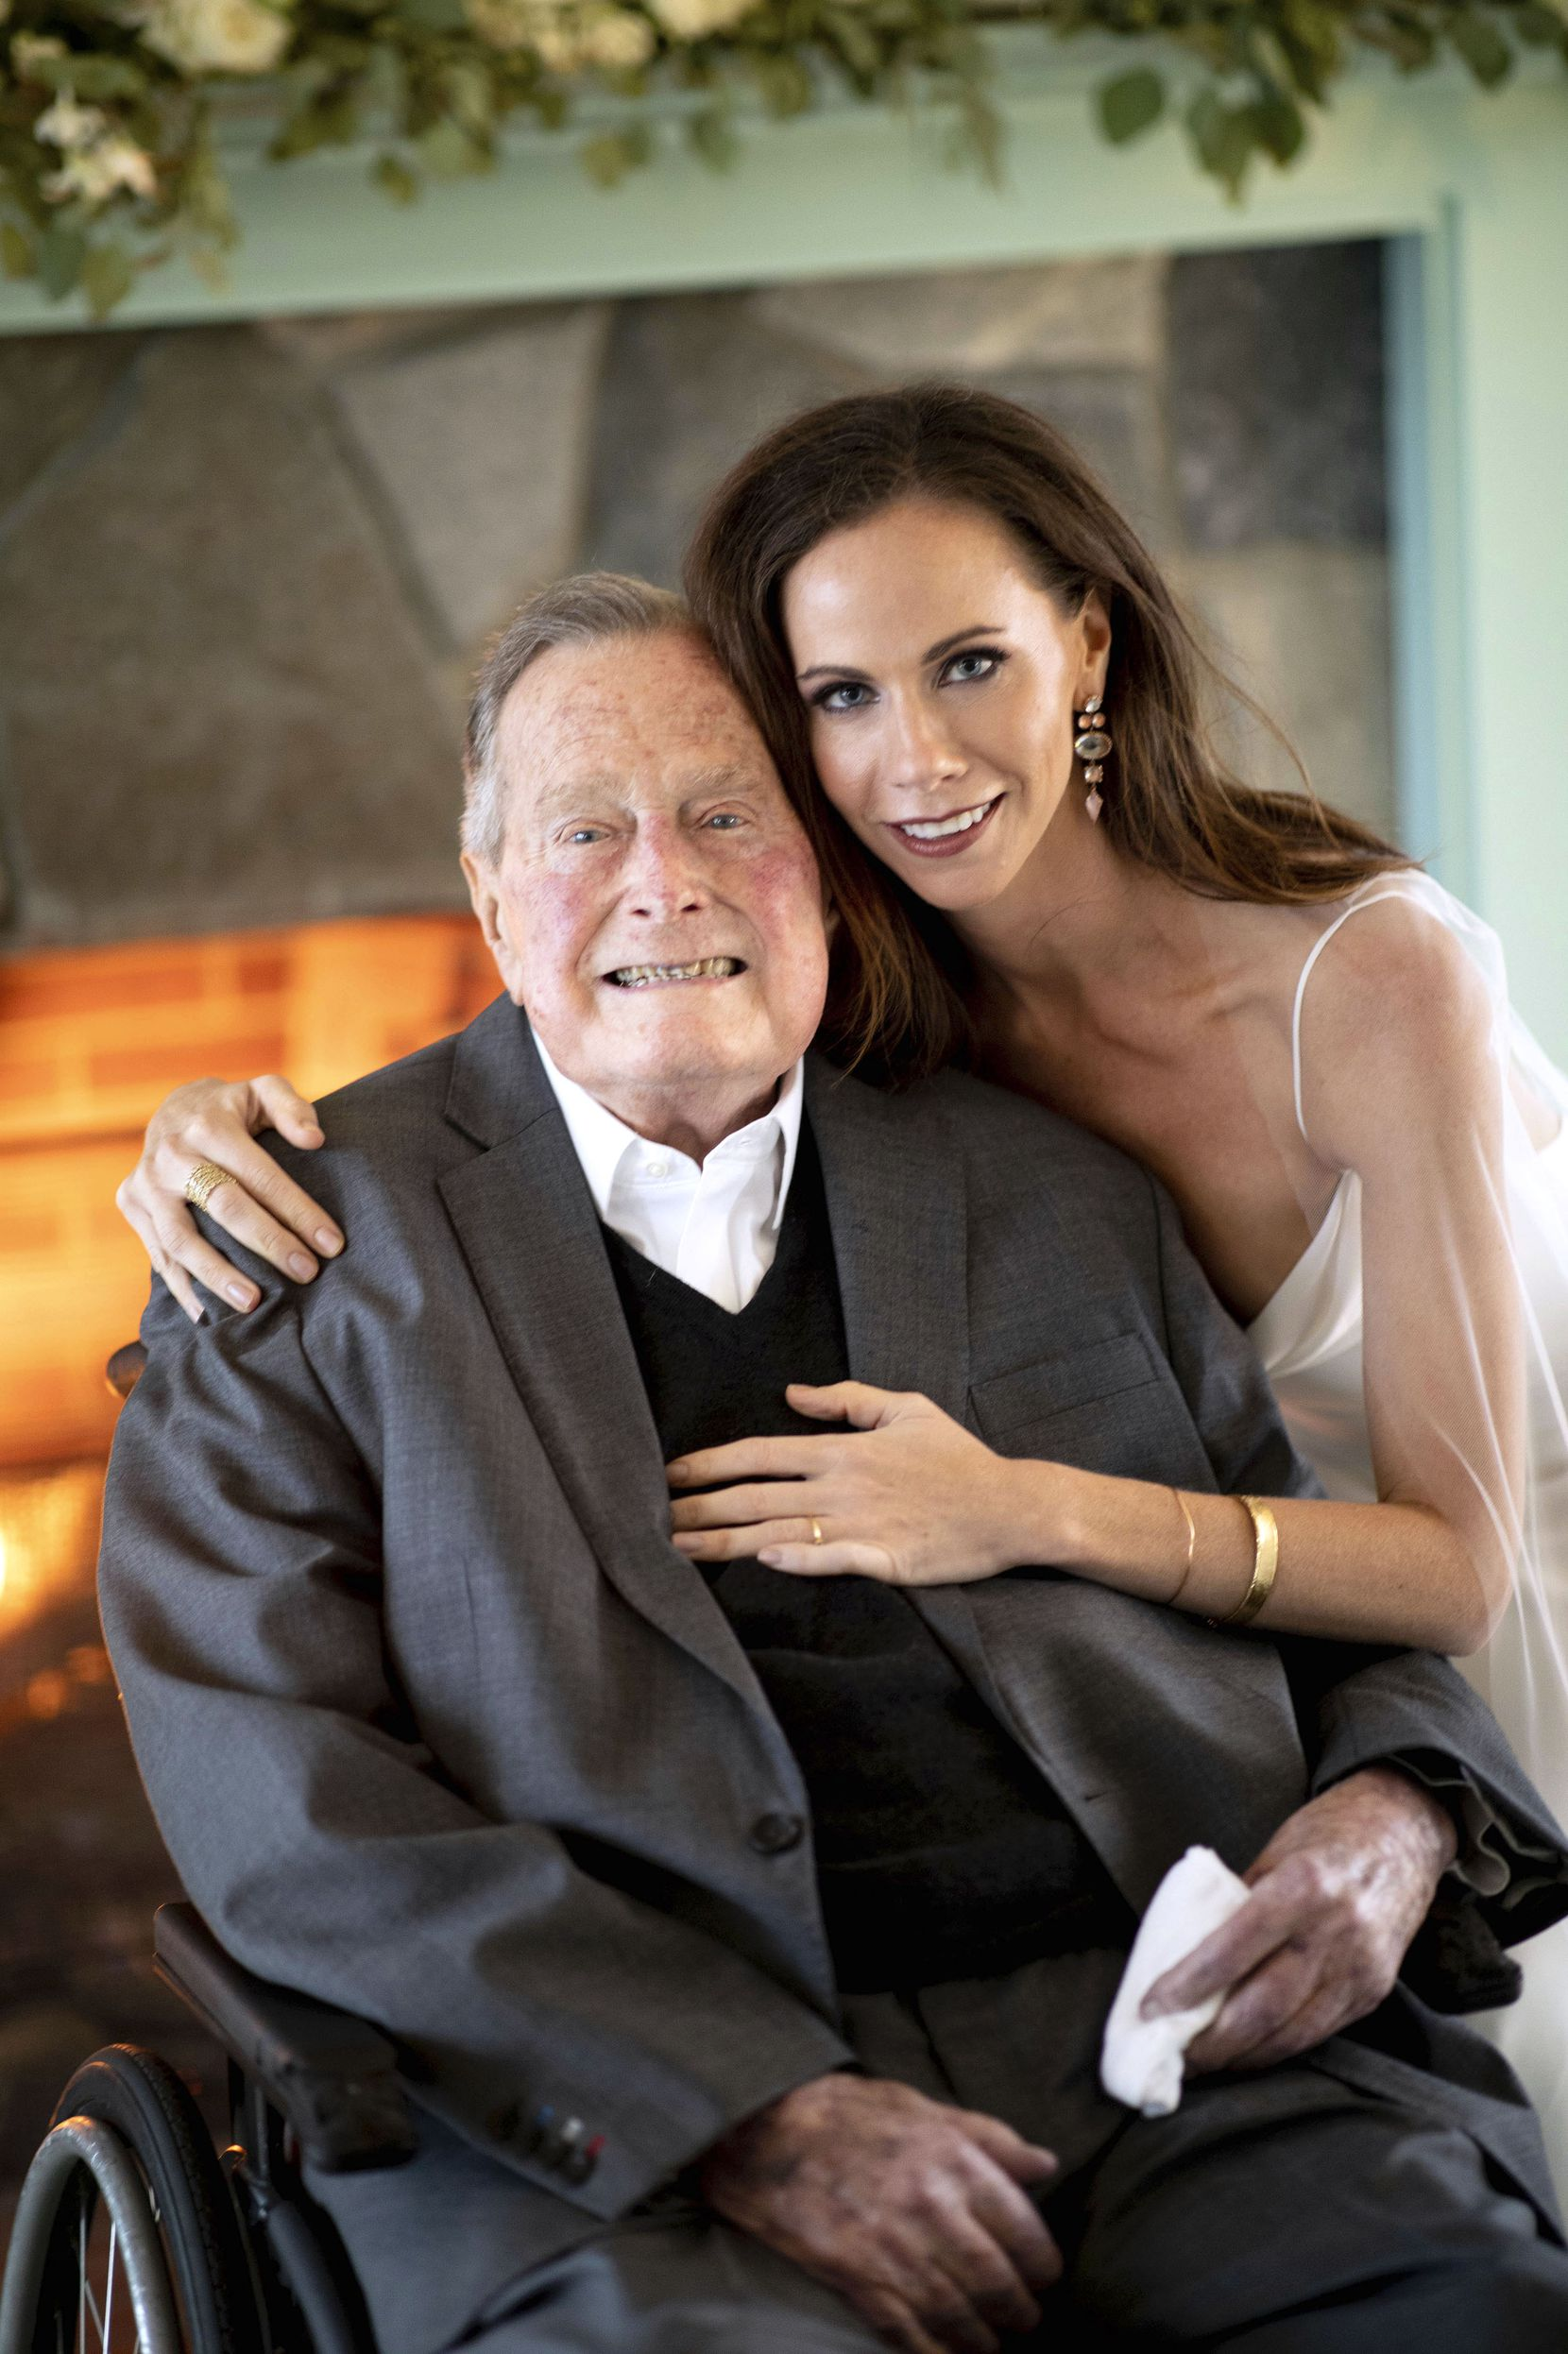 2018: Barbara Bush and her grandfather, former President George H. W. Bush, on Barbara's wedding day. She married Craig Coyne in Kennebunkport, Maine, on Sunday, Oct. 7, 2018.